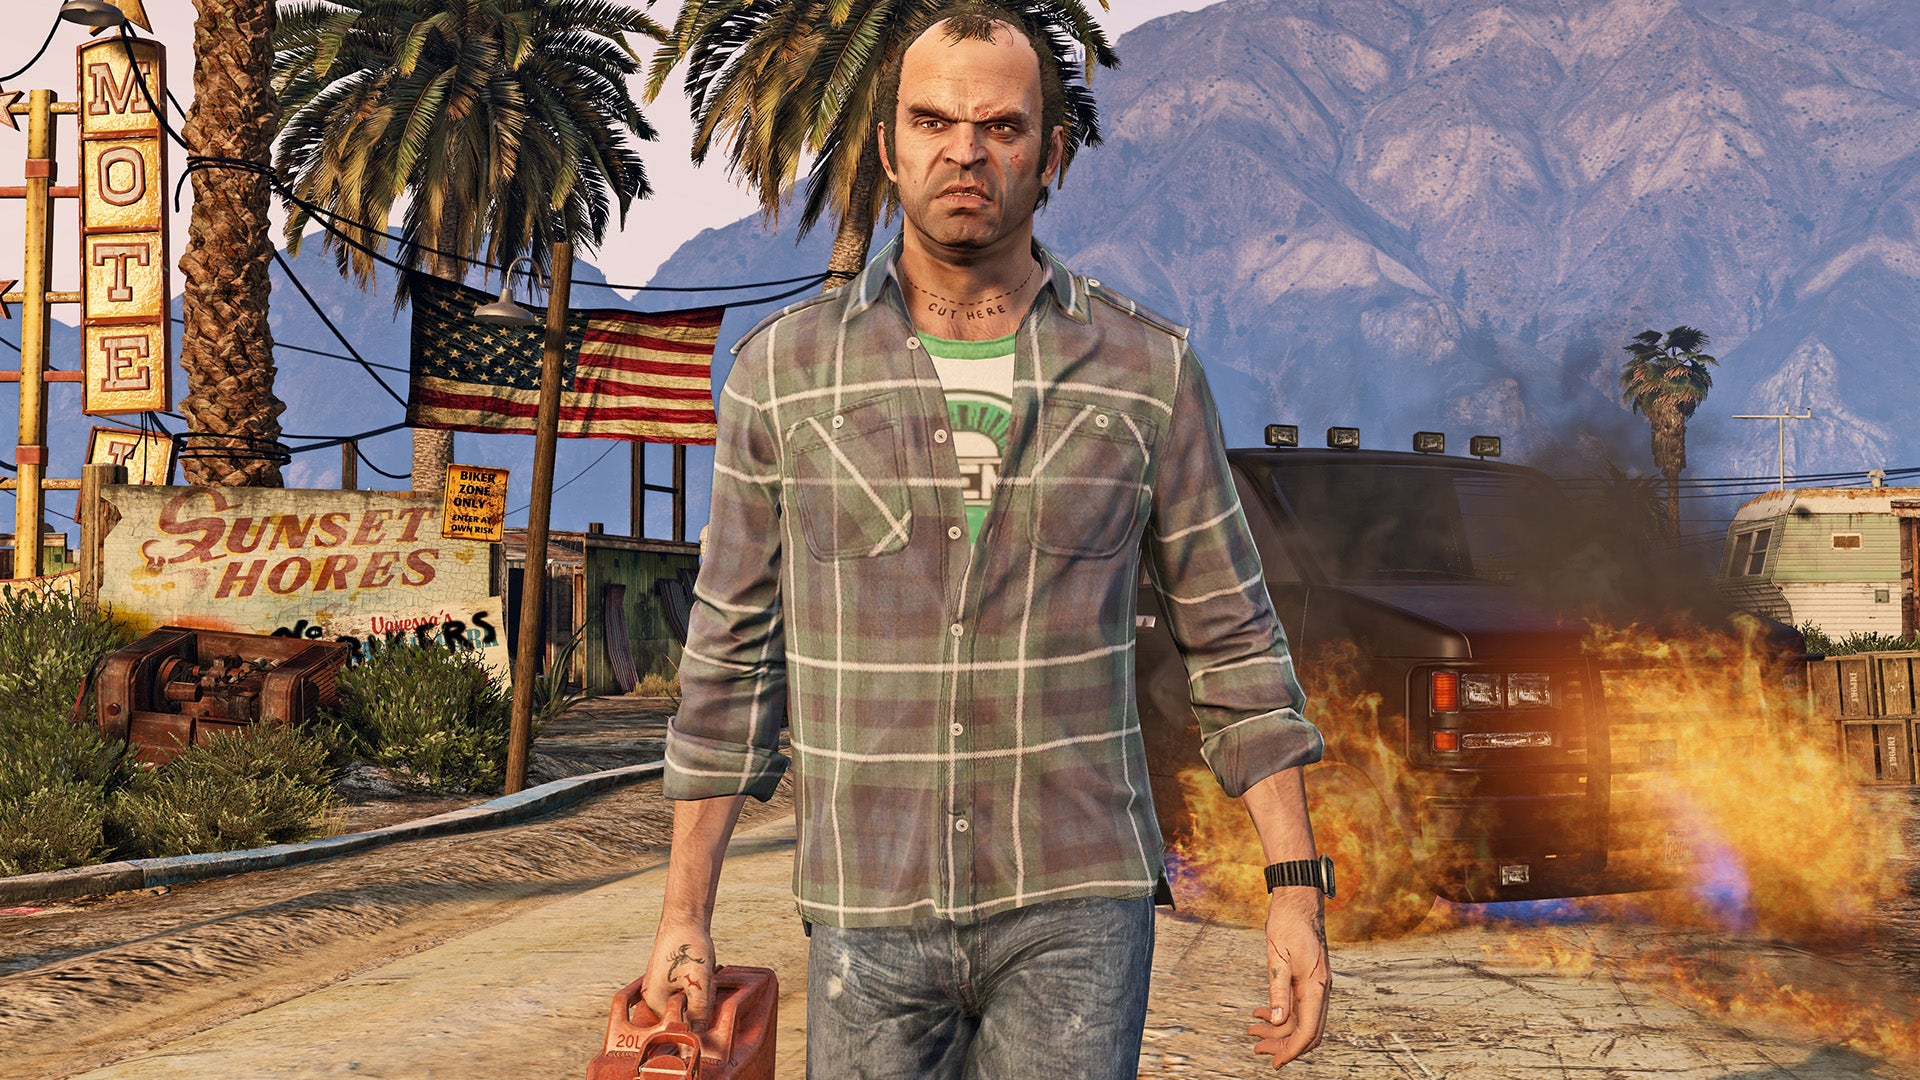 GTA 5 is now the most profitable entertainment product ever